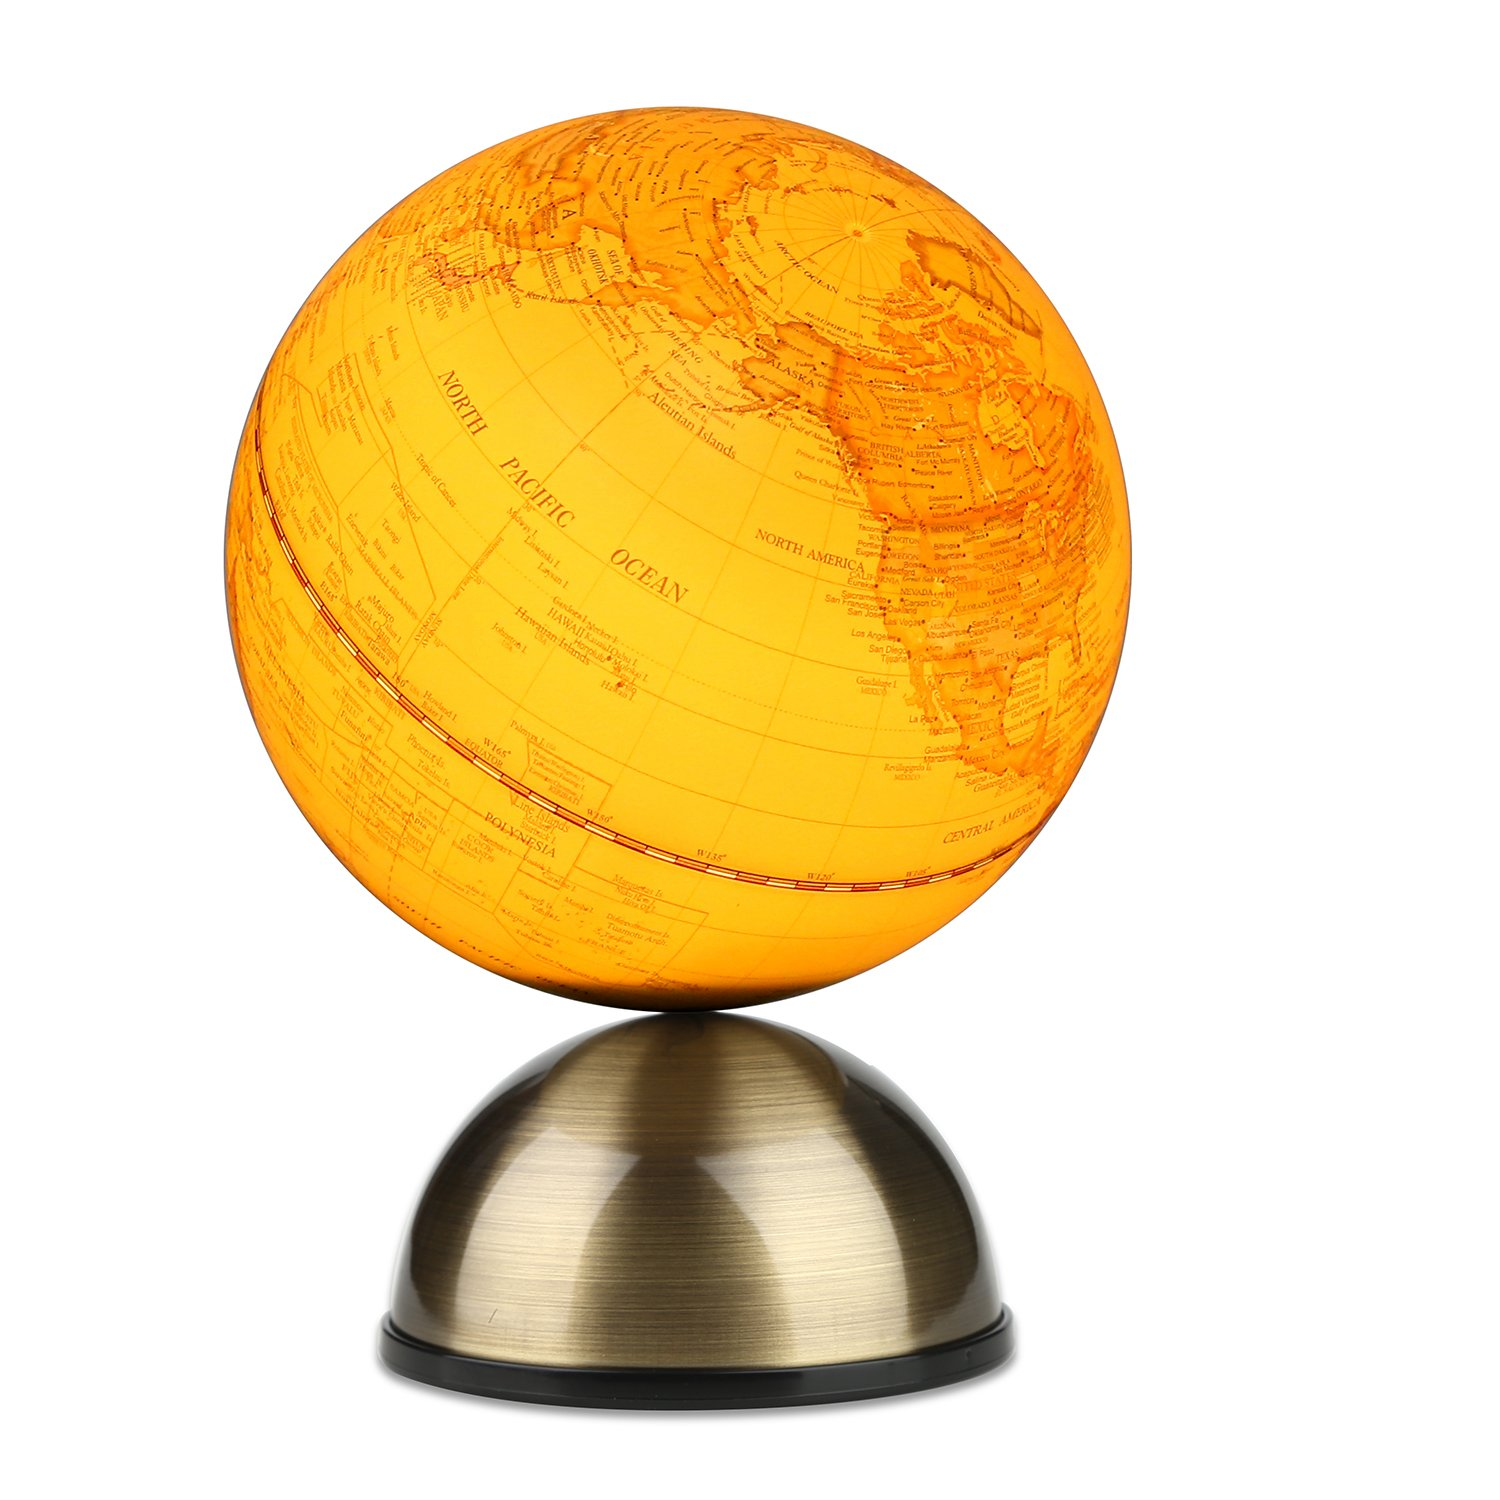 2 in 1 Globe Earth and Night light, Vintage Reference World Globe Home Work Decor Wedding Educational Gift 13cm With Metal Magnetic Base+Magnifier Ideal for Gifts and Home Decoration - illuminated TTKTK